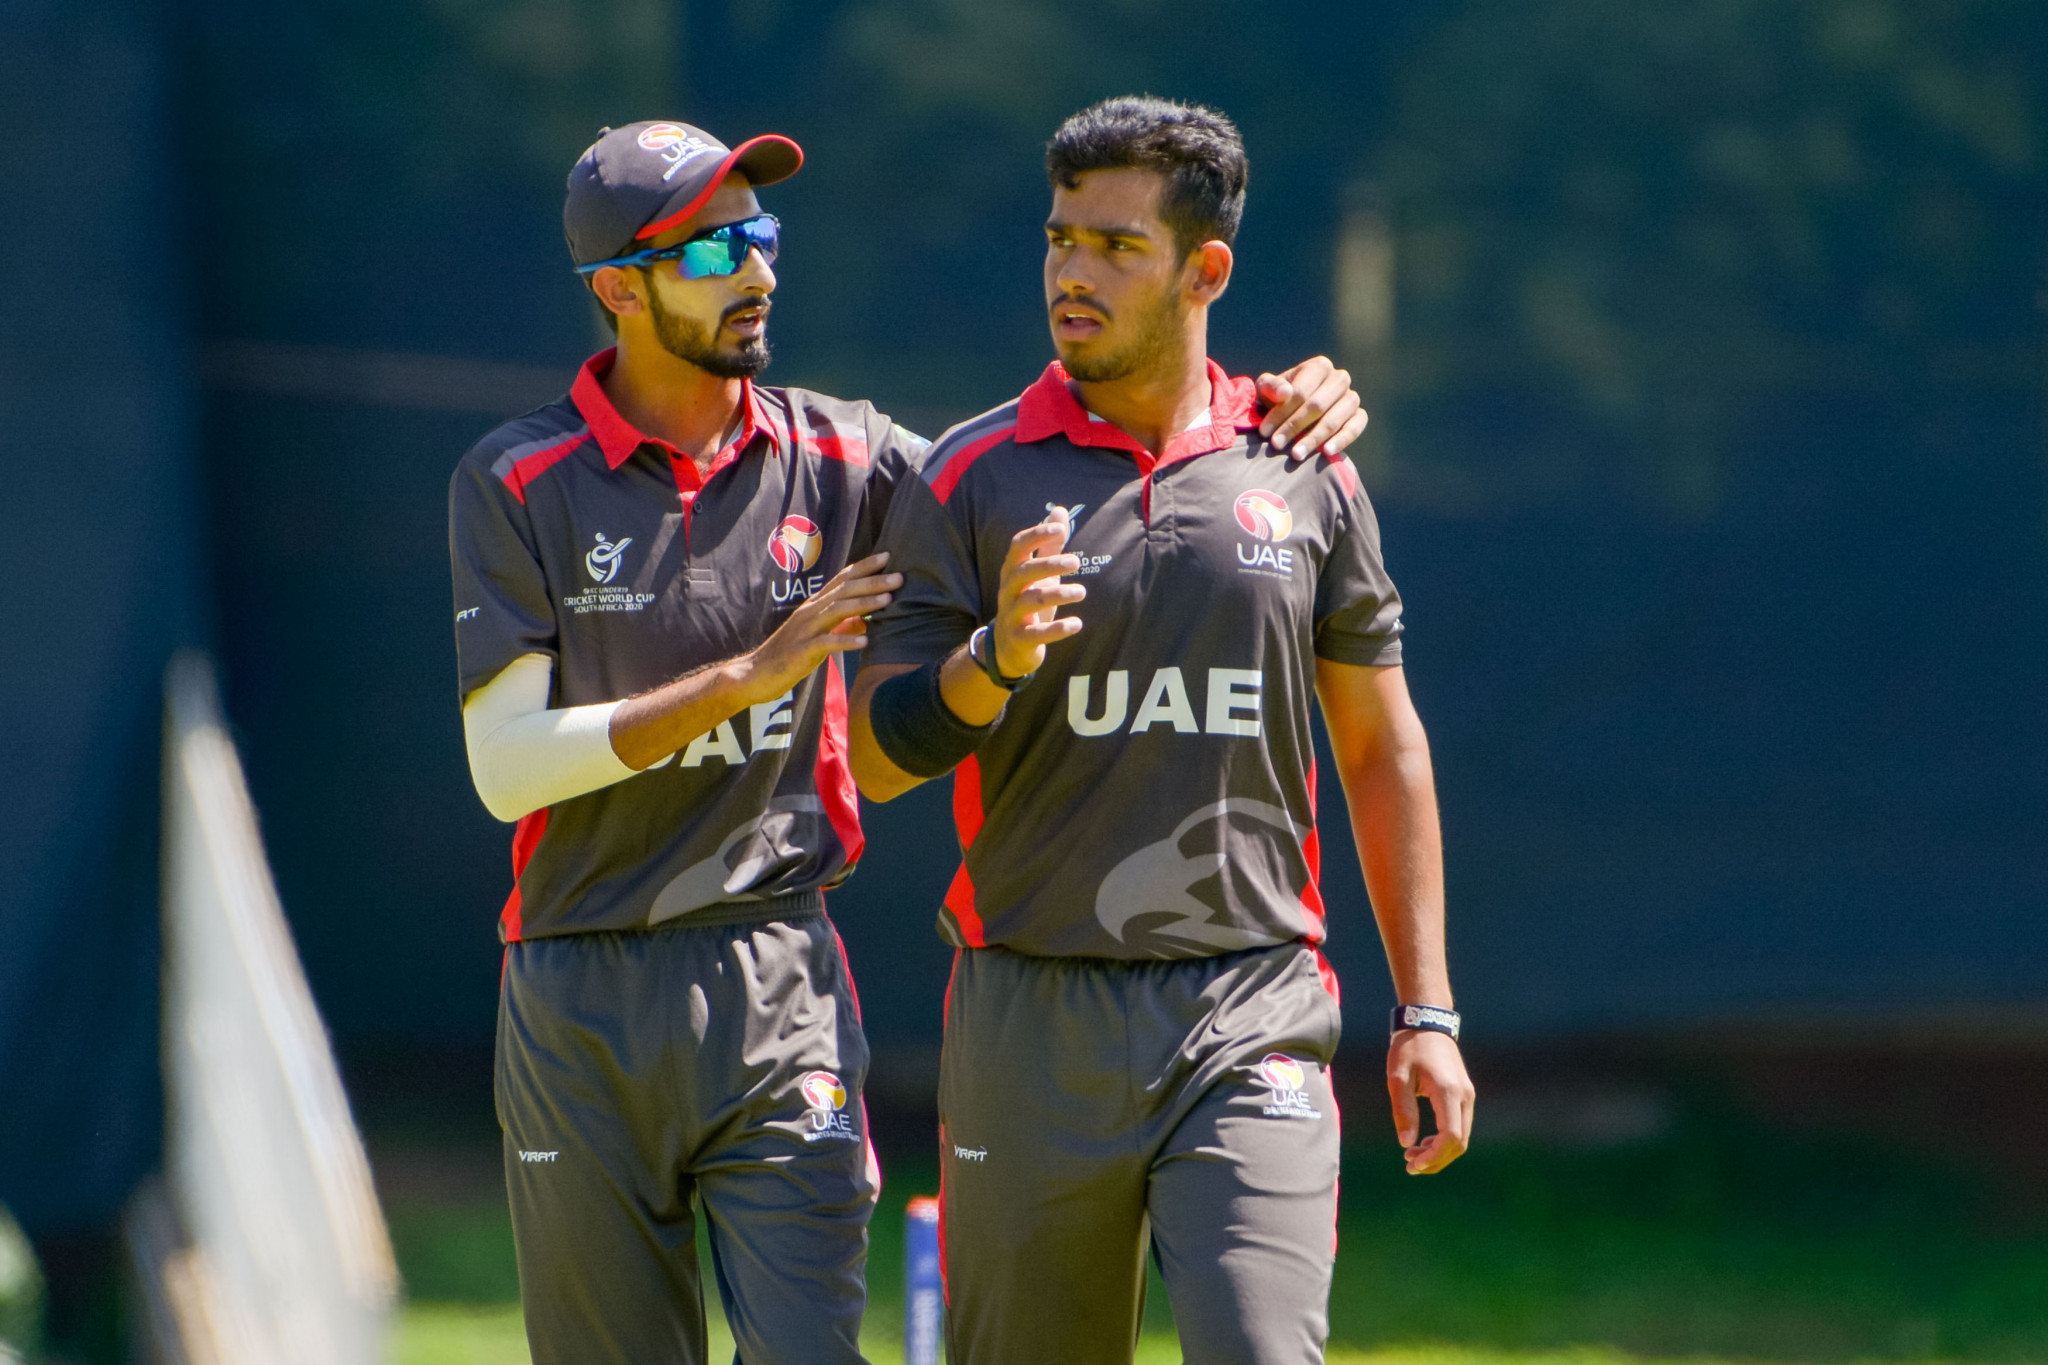 The United Arab Emirates and Oman are ranked 15th and 18th in the ICC Twenty20 Rankings, respectively. ©Getty Images